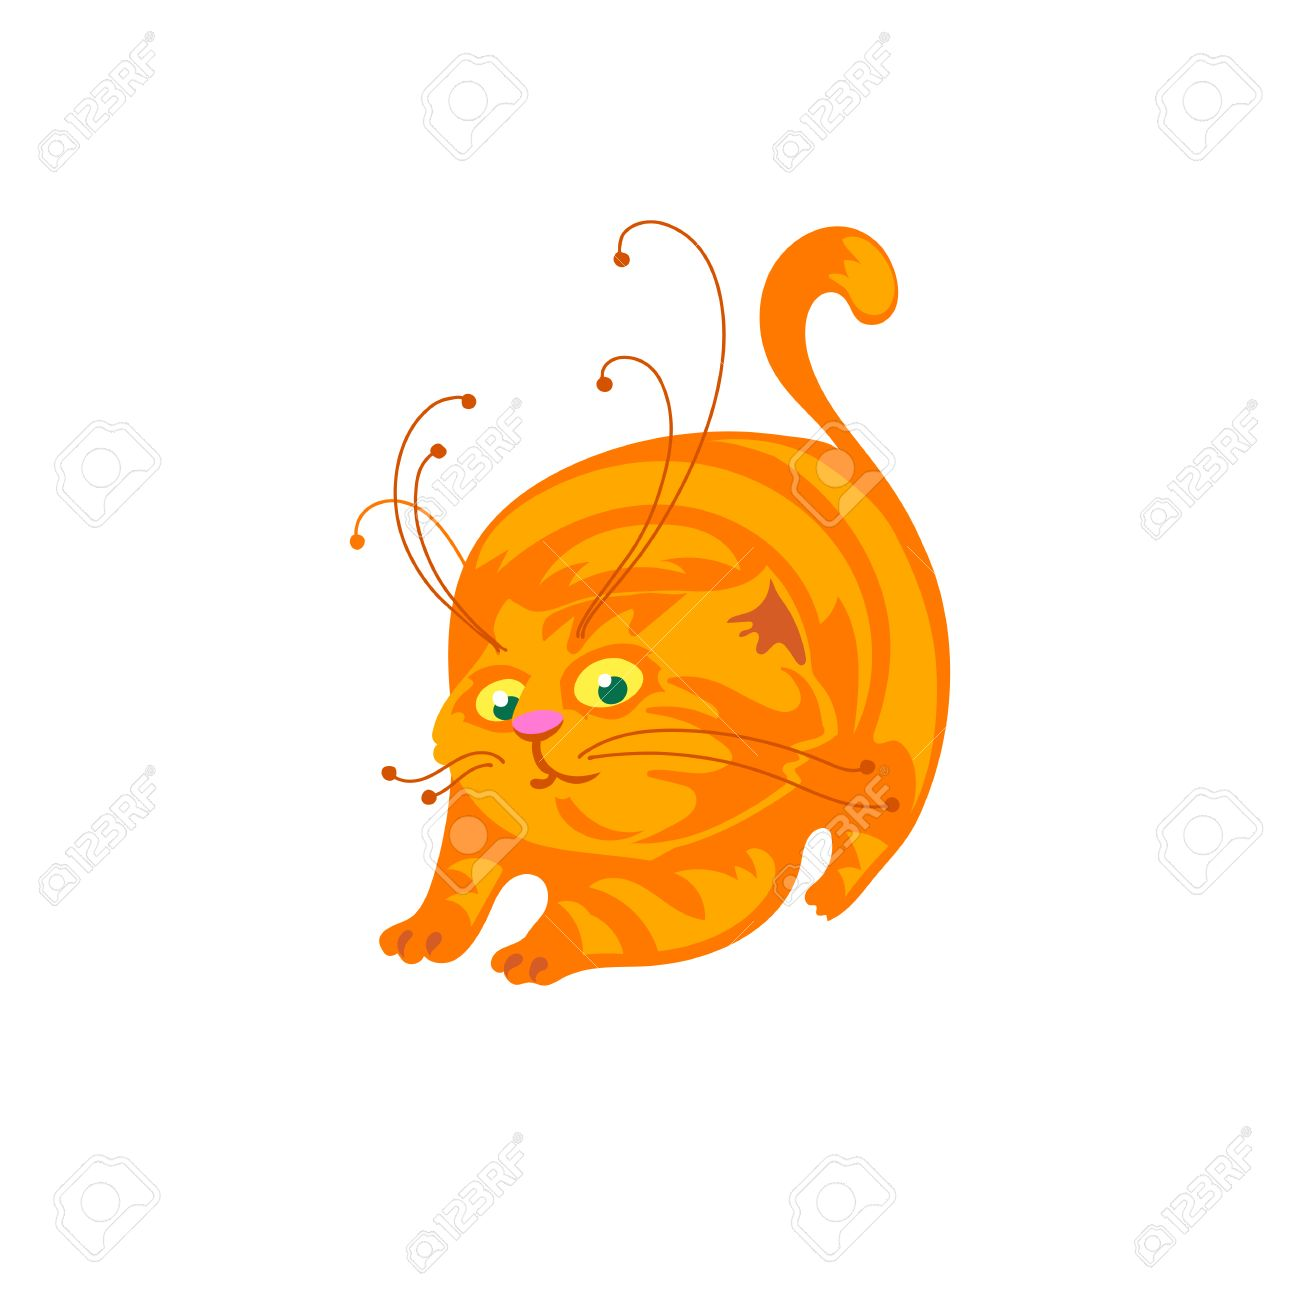 1300x1300 Cat Cartoon Vector Illustration. Cute Ginger Cat Stretching